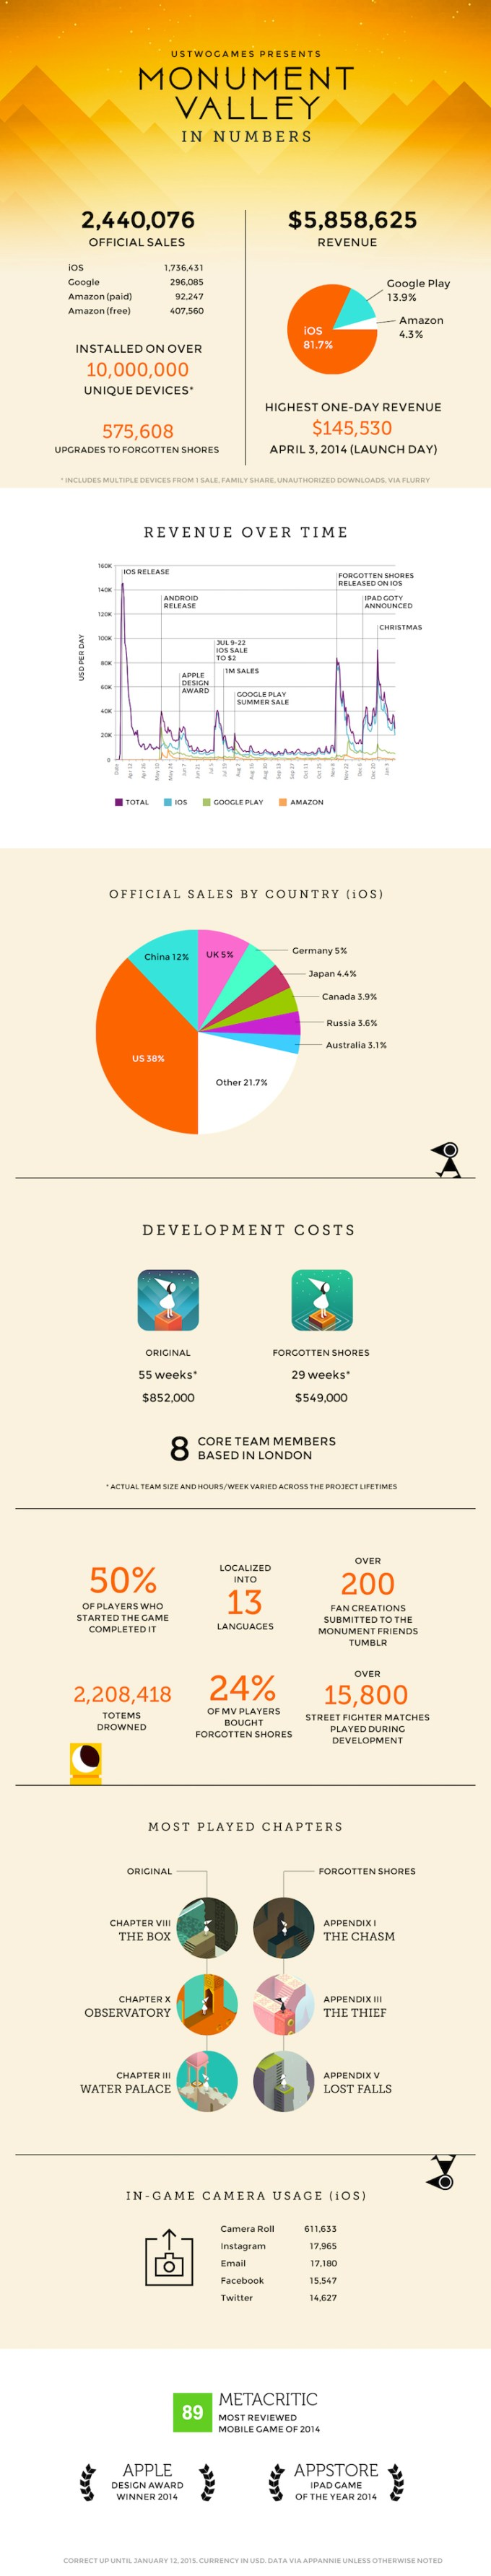 Monument Valley w liczbach - infografika